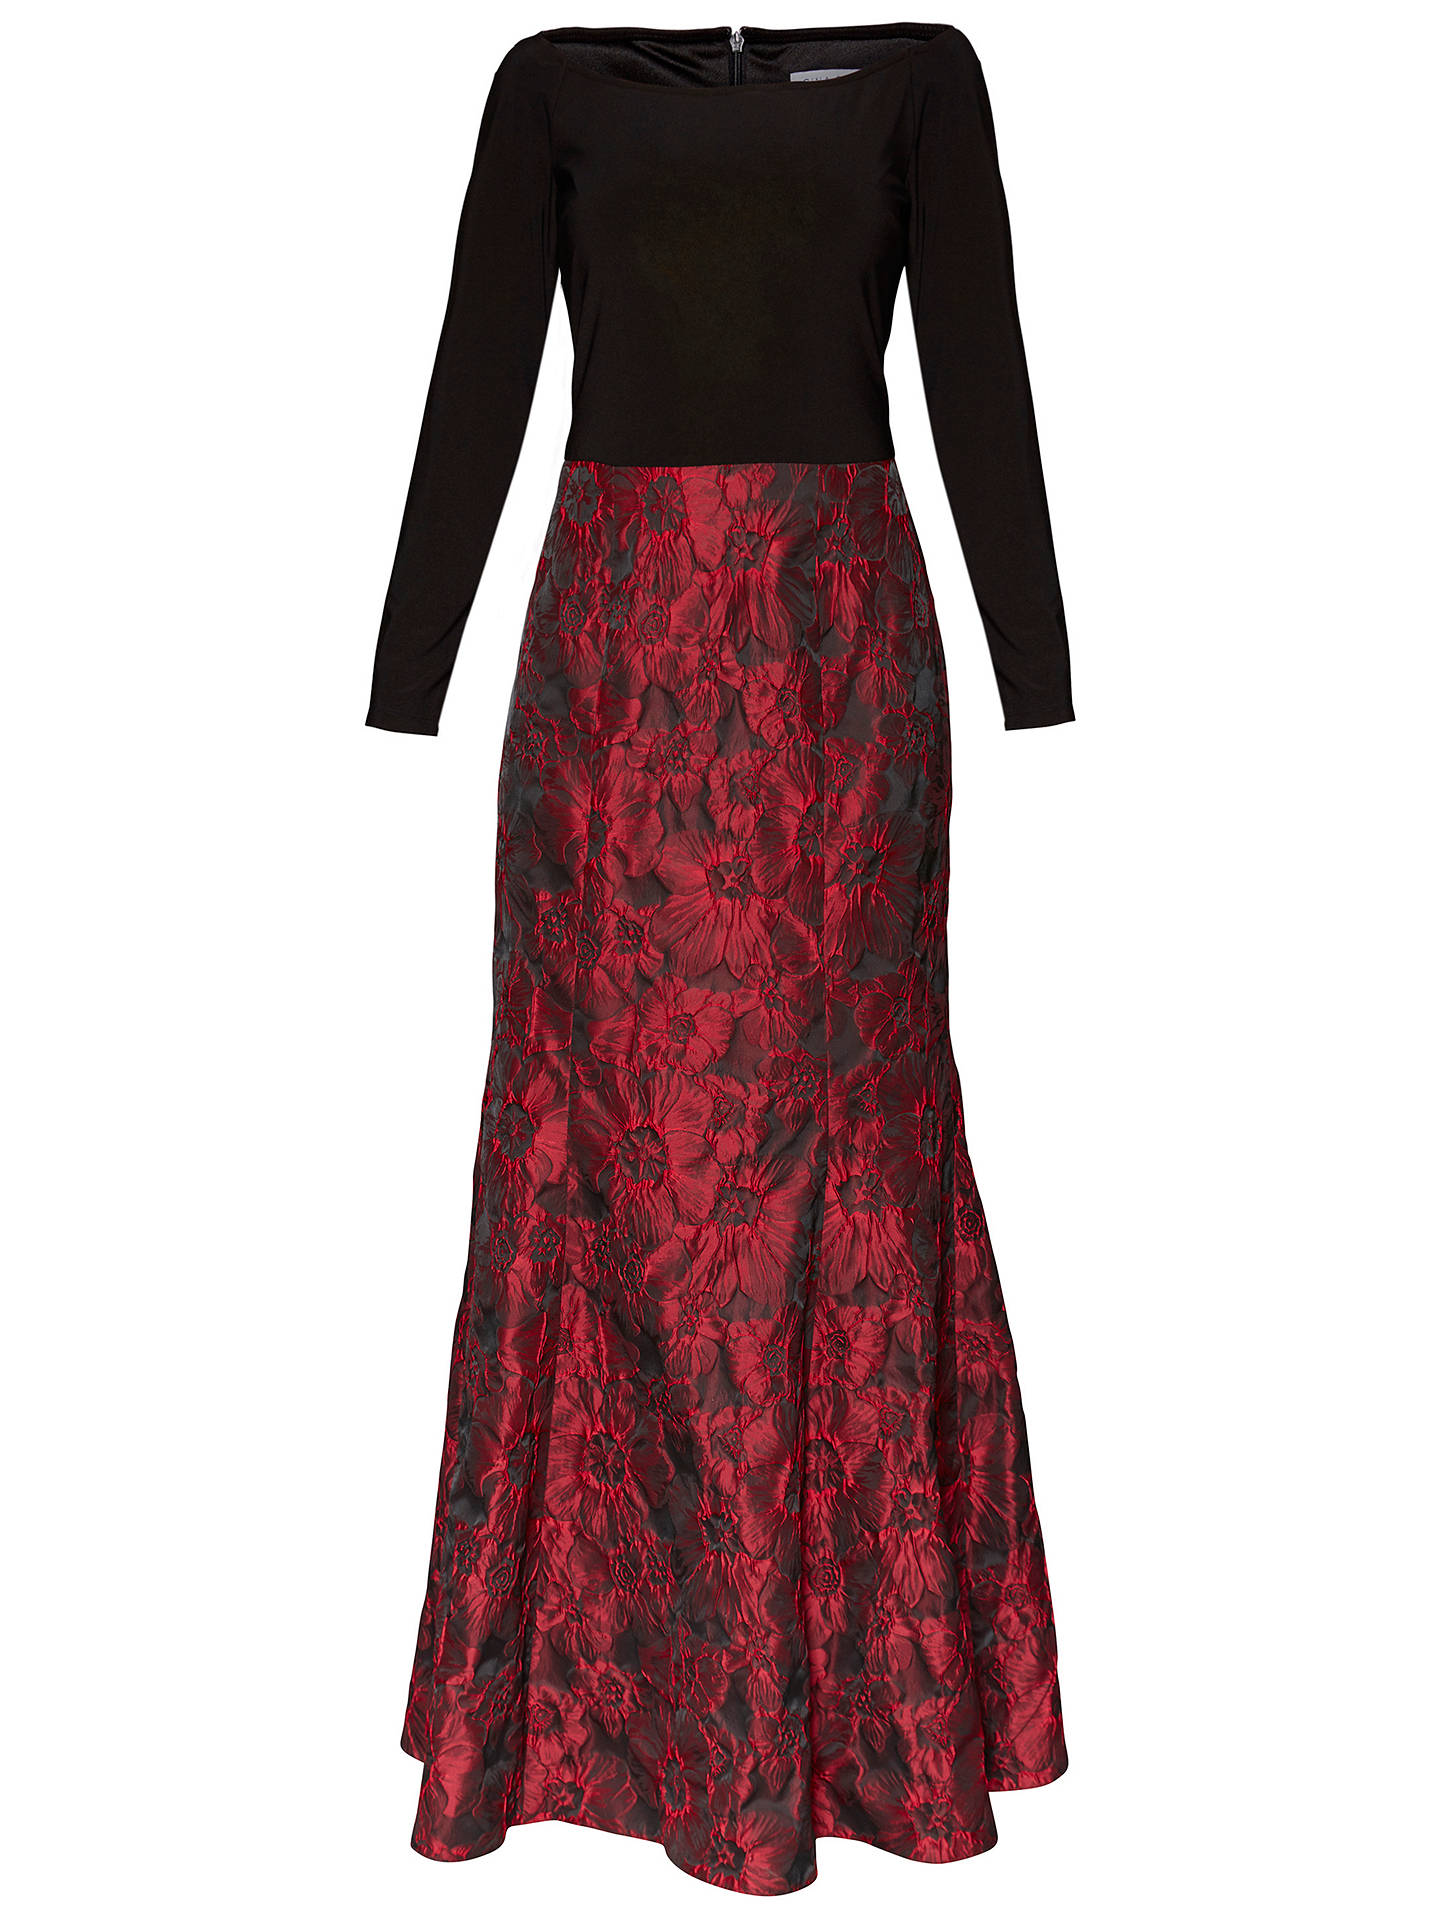 BuyGina Bacconi Octavia Jacquard Maxi Dress, Red/Black, 8 Online at johnlewis.com